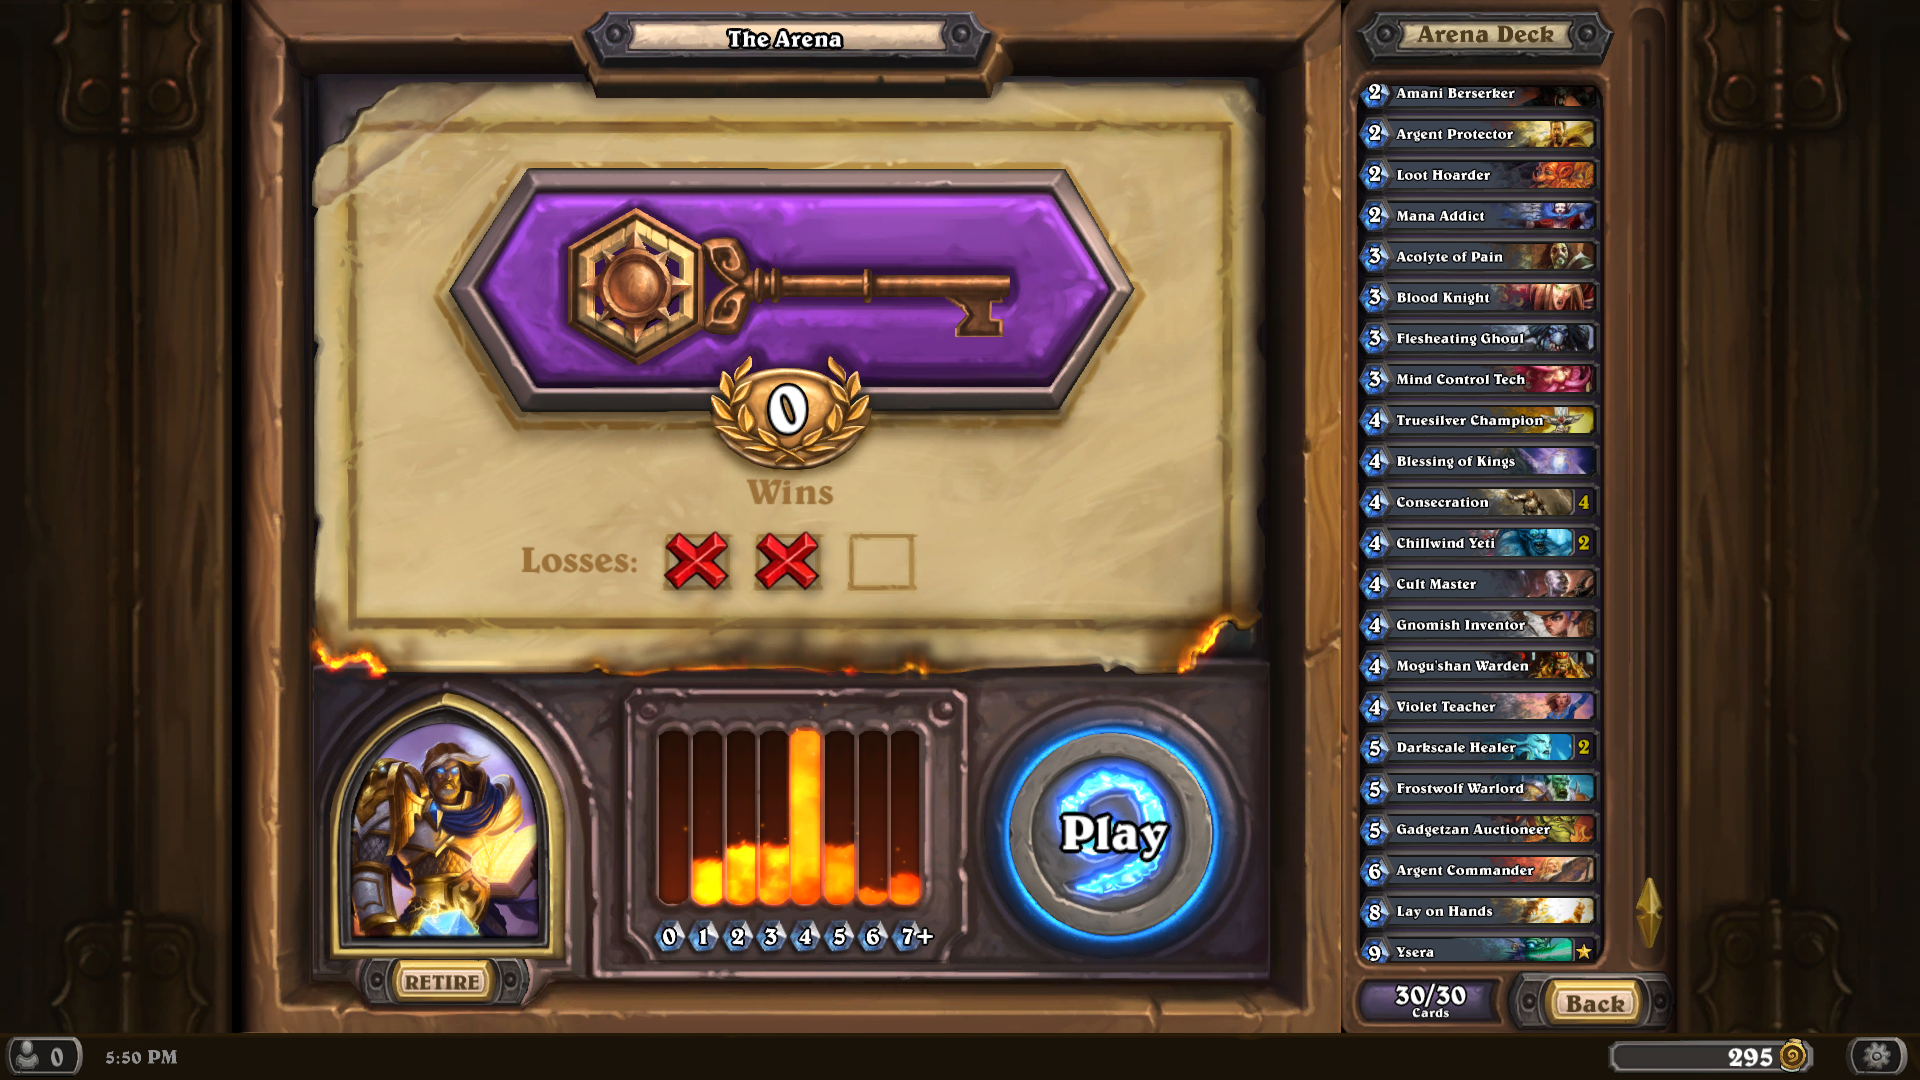 0-3 in hearthstone arena with this deck  | TechPowerUp Forums